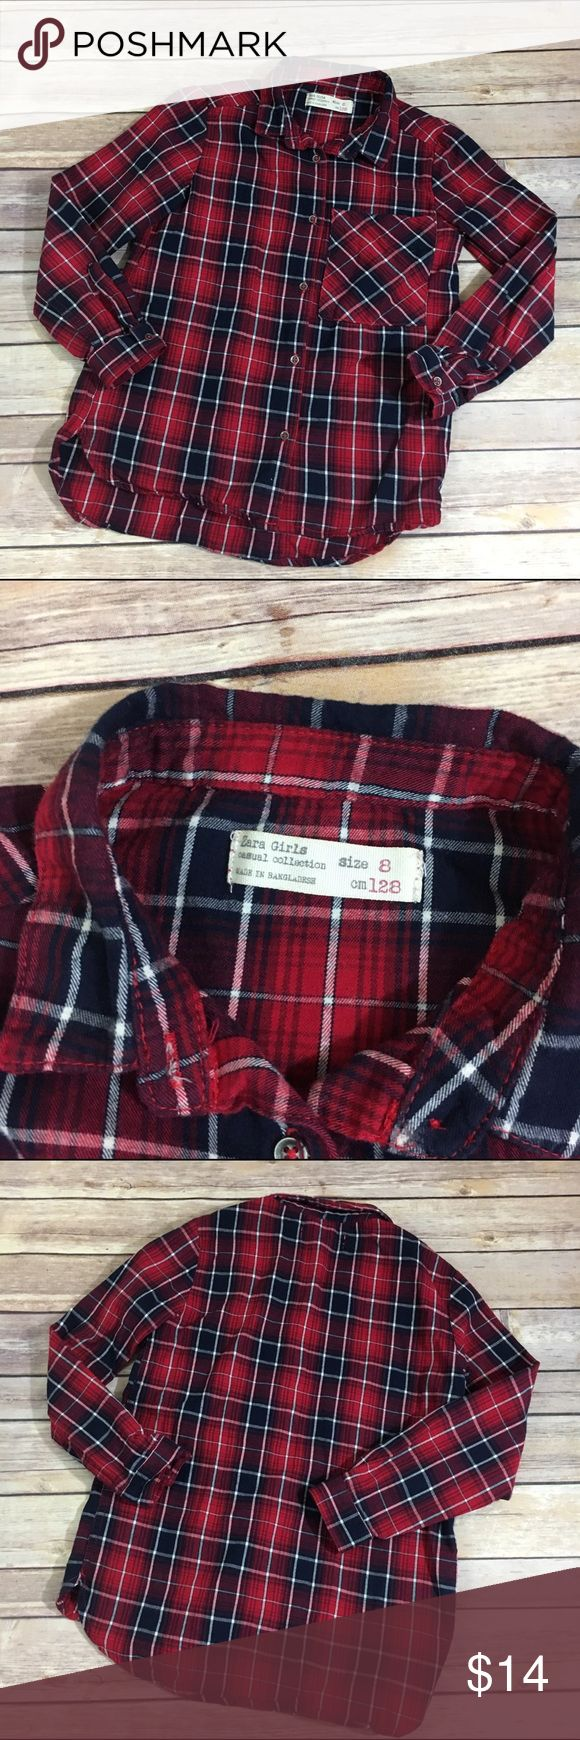 Zara Girls Red Plaid Brushed Cotton Shirt 8 Zara Girls Red Plaid Brushed Cotton Shirt 8   Super cute - great for fall.  Very fitted and does not run big.  Brushed cotton.  Great condition.  #red #plaid #shirt #buttonup #fall #brushedcotton #itsfallyall #zara #zaragirls Zara Shirts & Tops Button Down Shirts